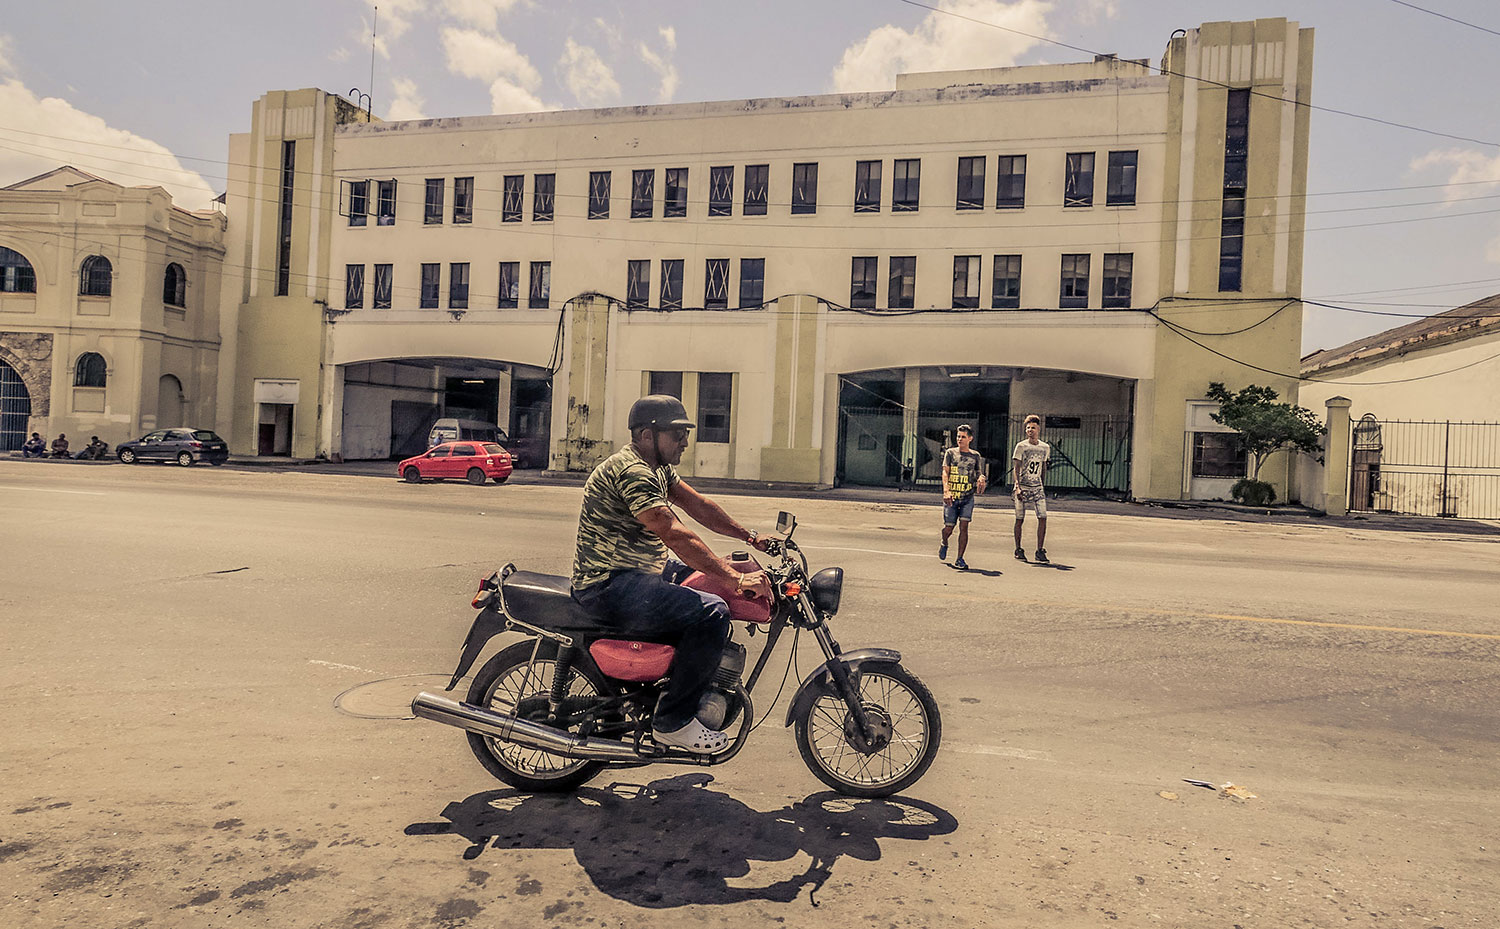 Cuban guy in Resurgence Gears, Pekev® Lite, Dark Blue motorcycle jeans - Picture by Dean Saffron 5